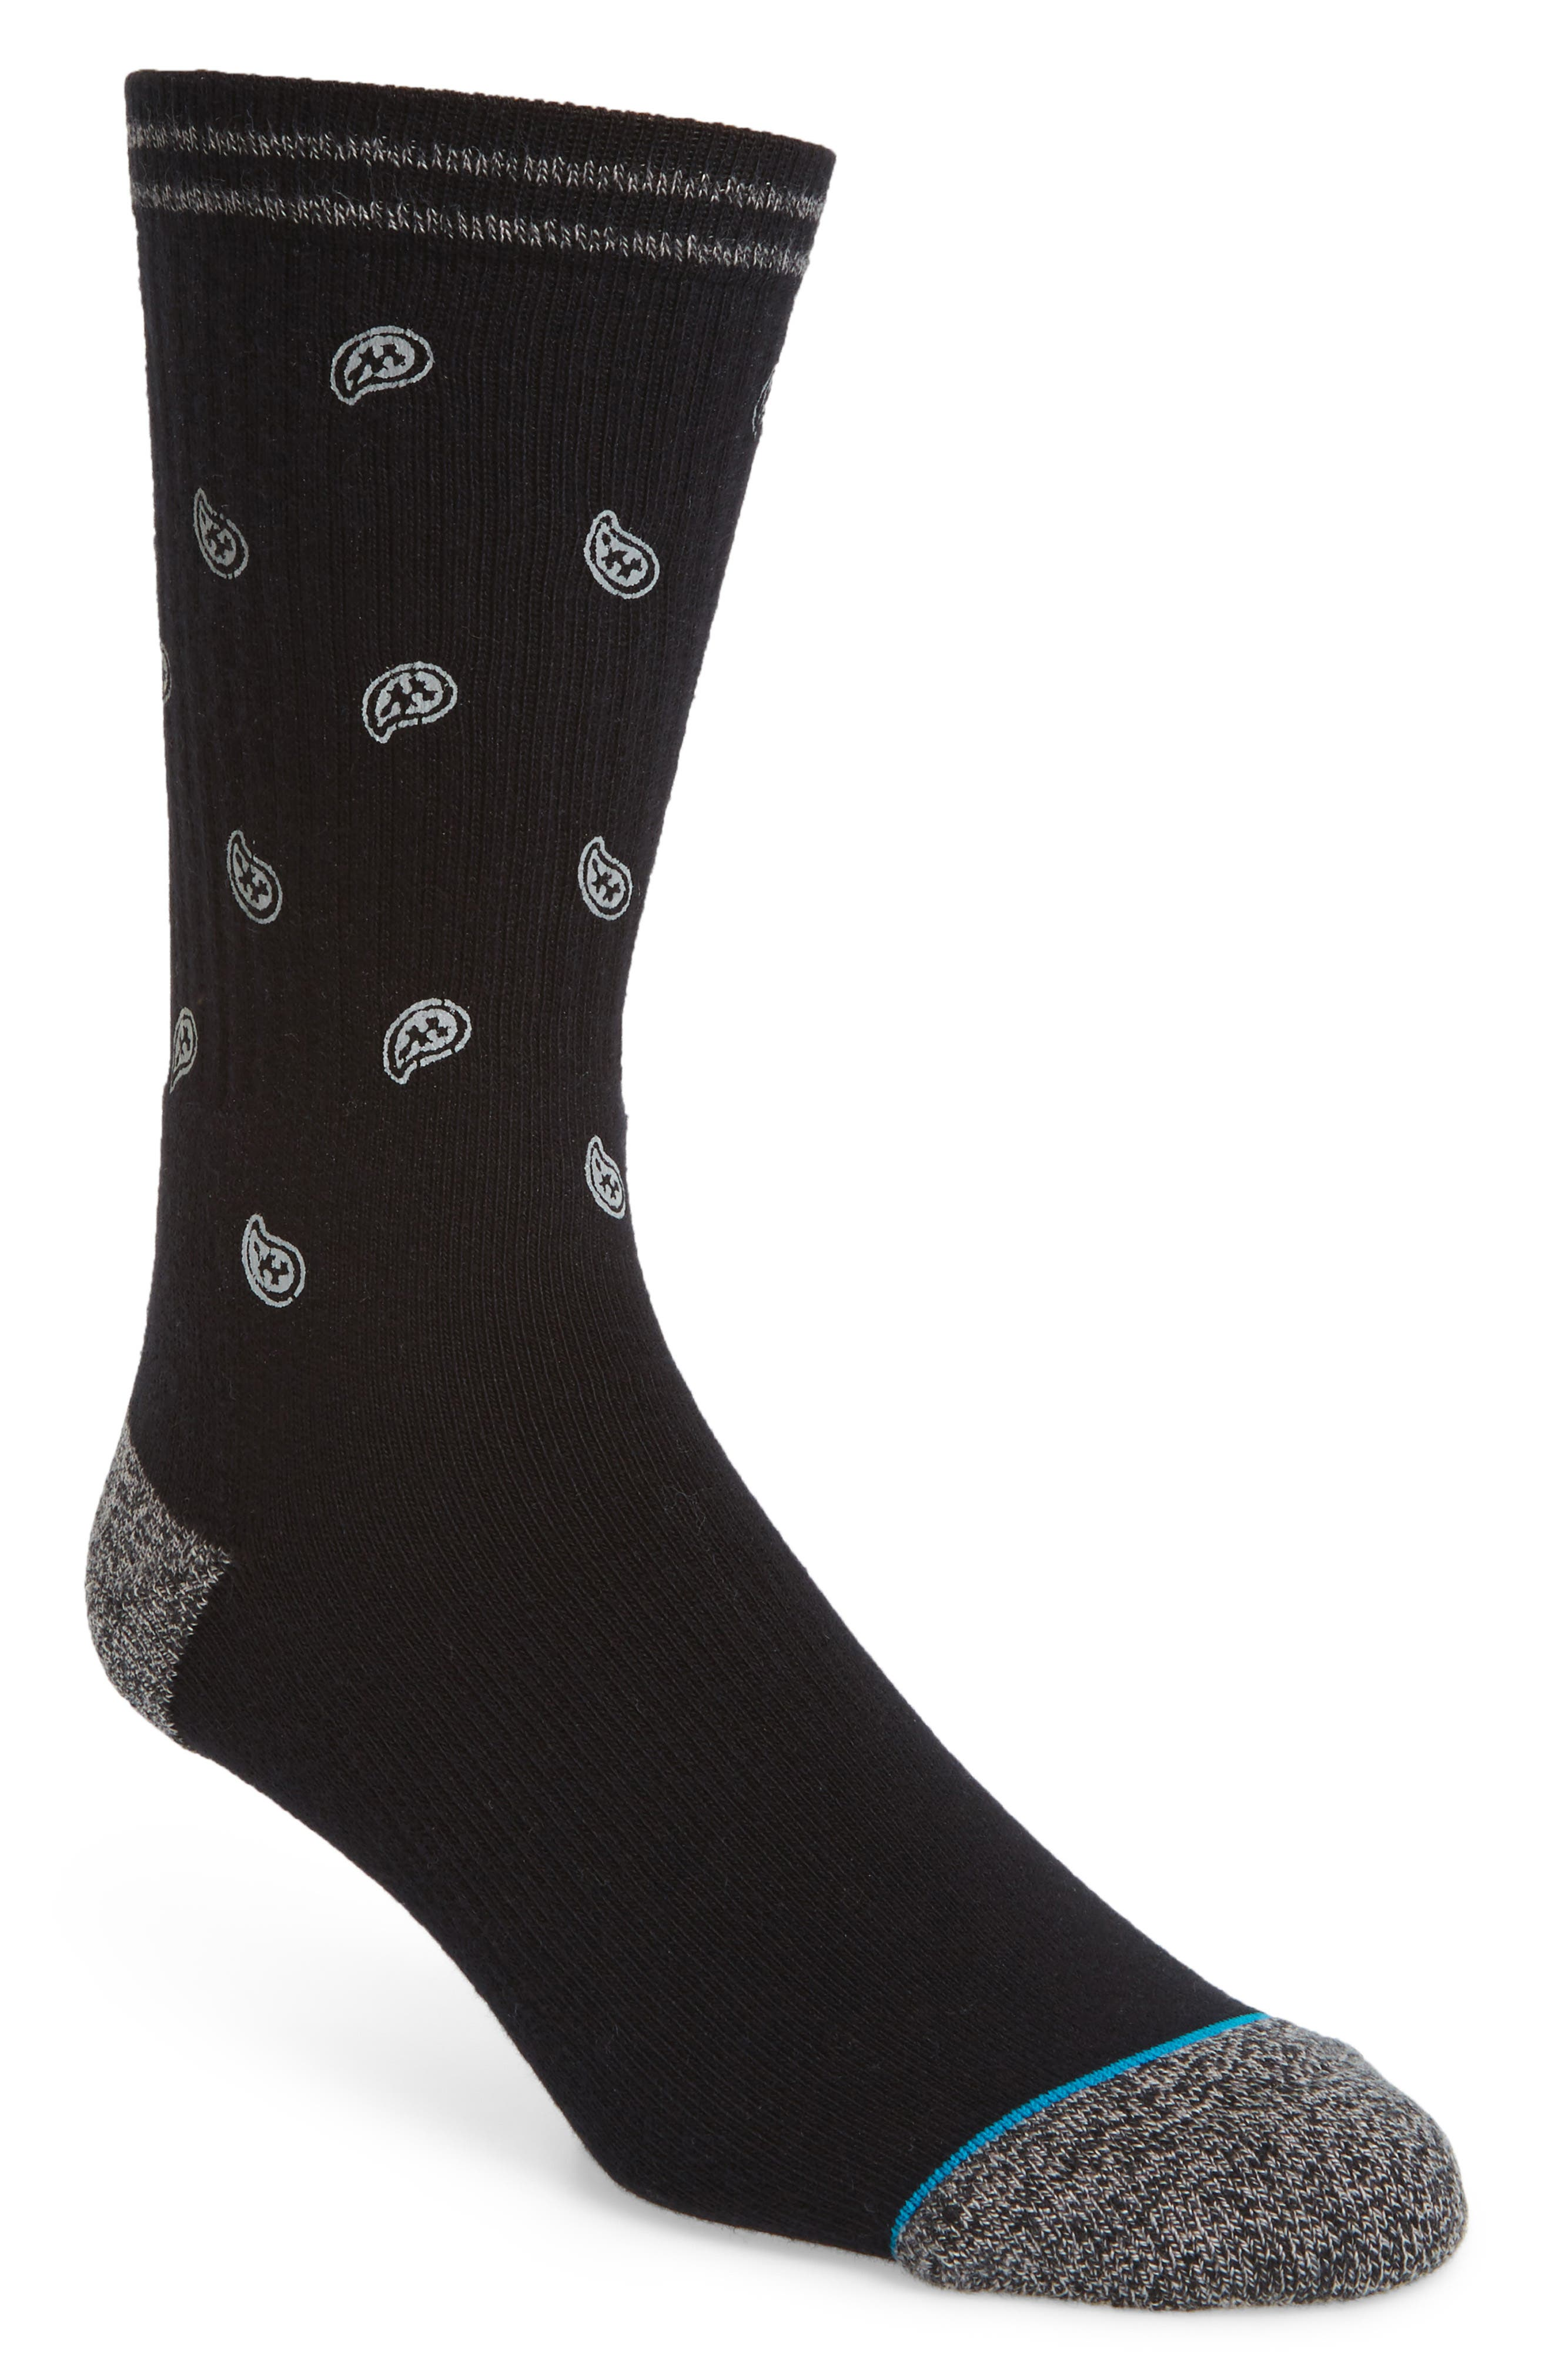 Emerge Socks,                             Main thumbnail 1, color,                             BLACK